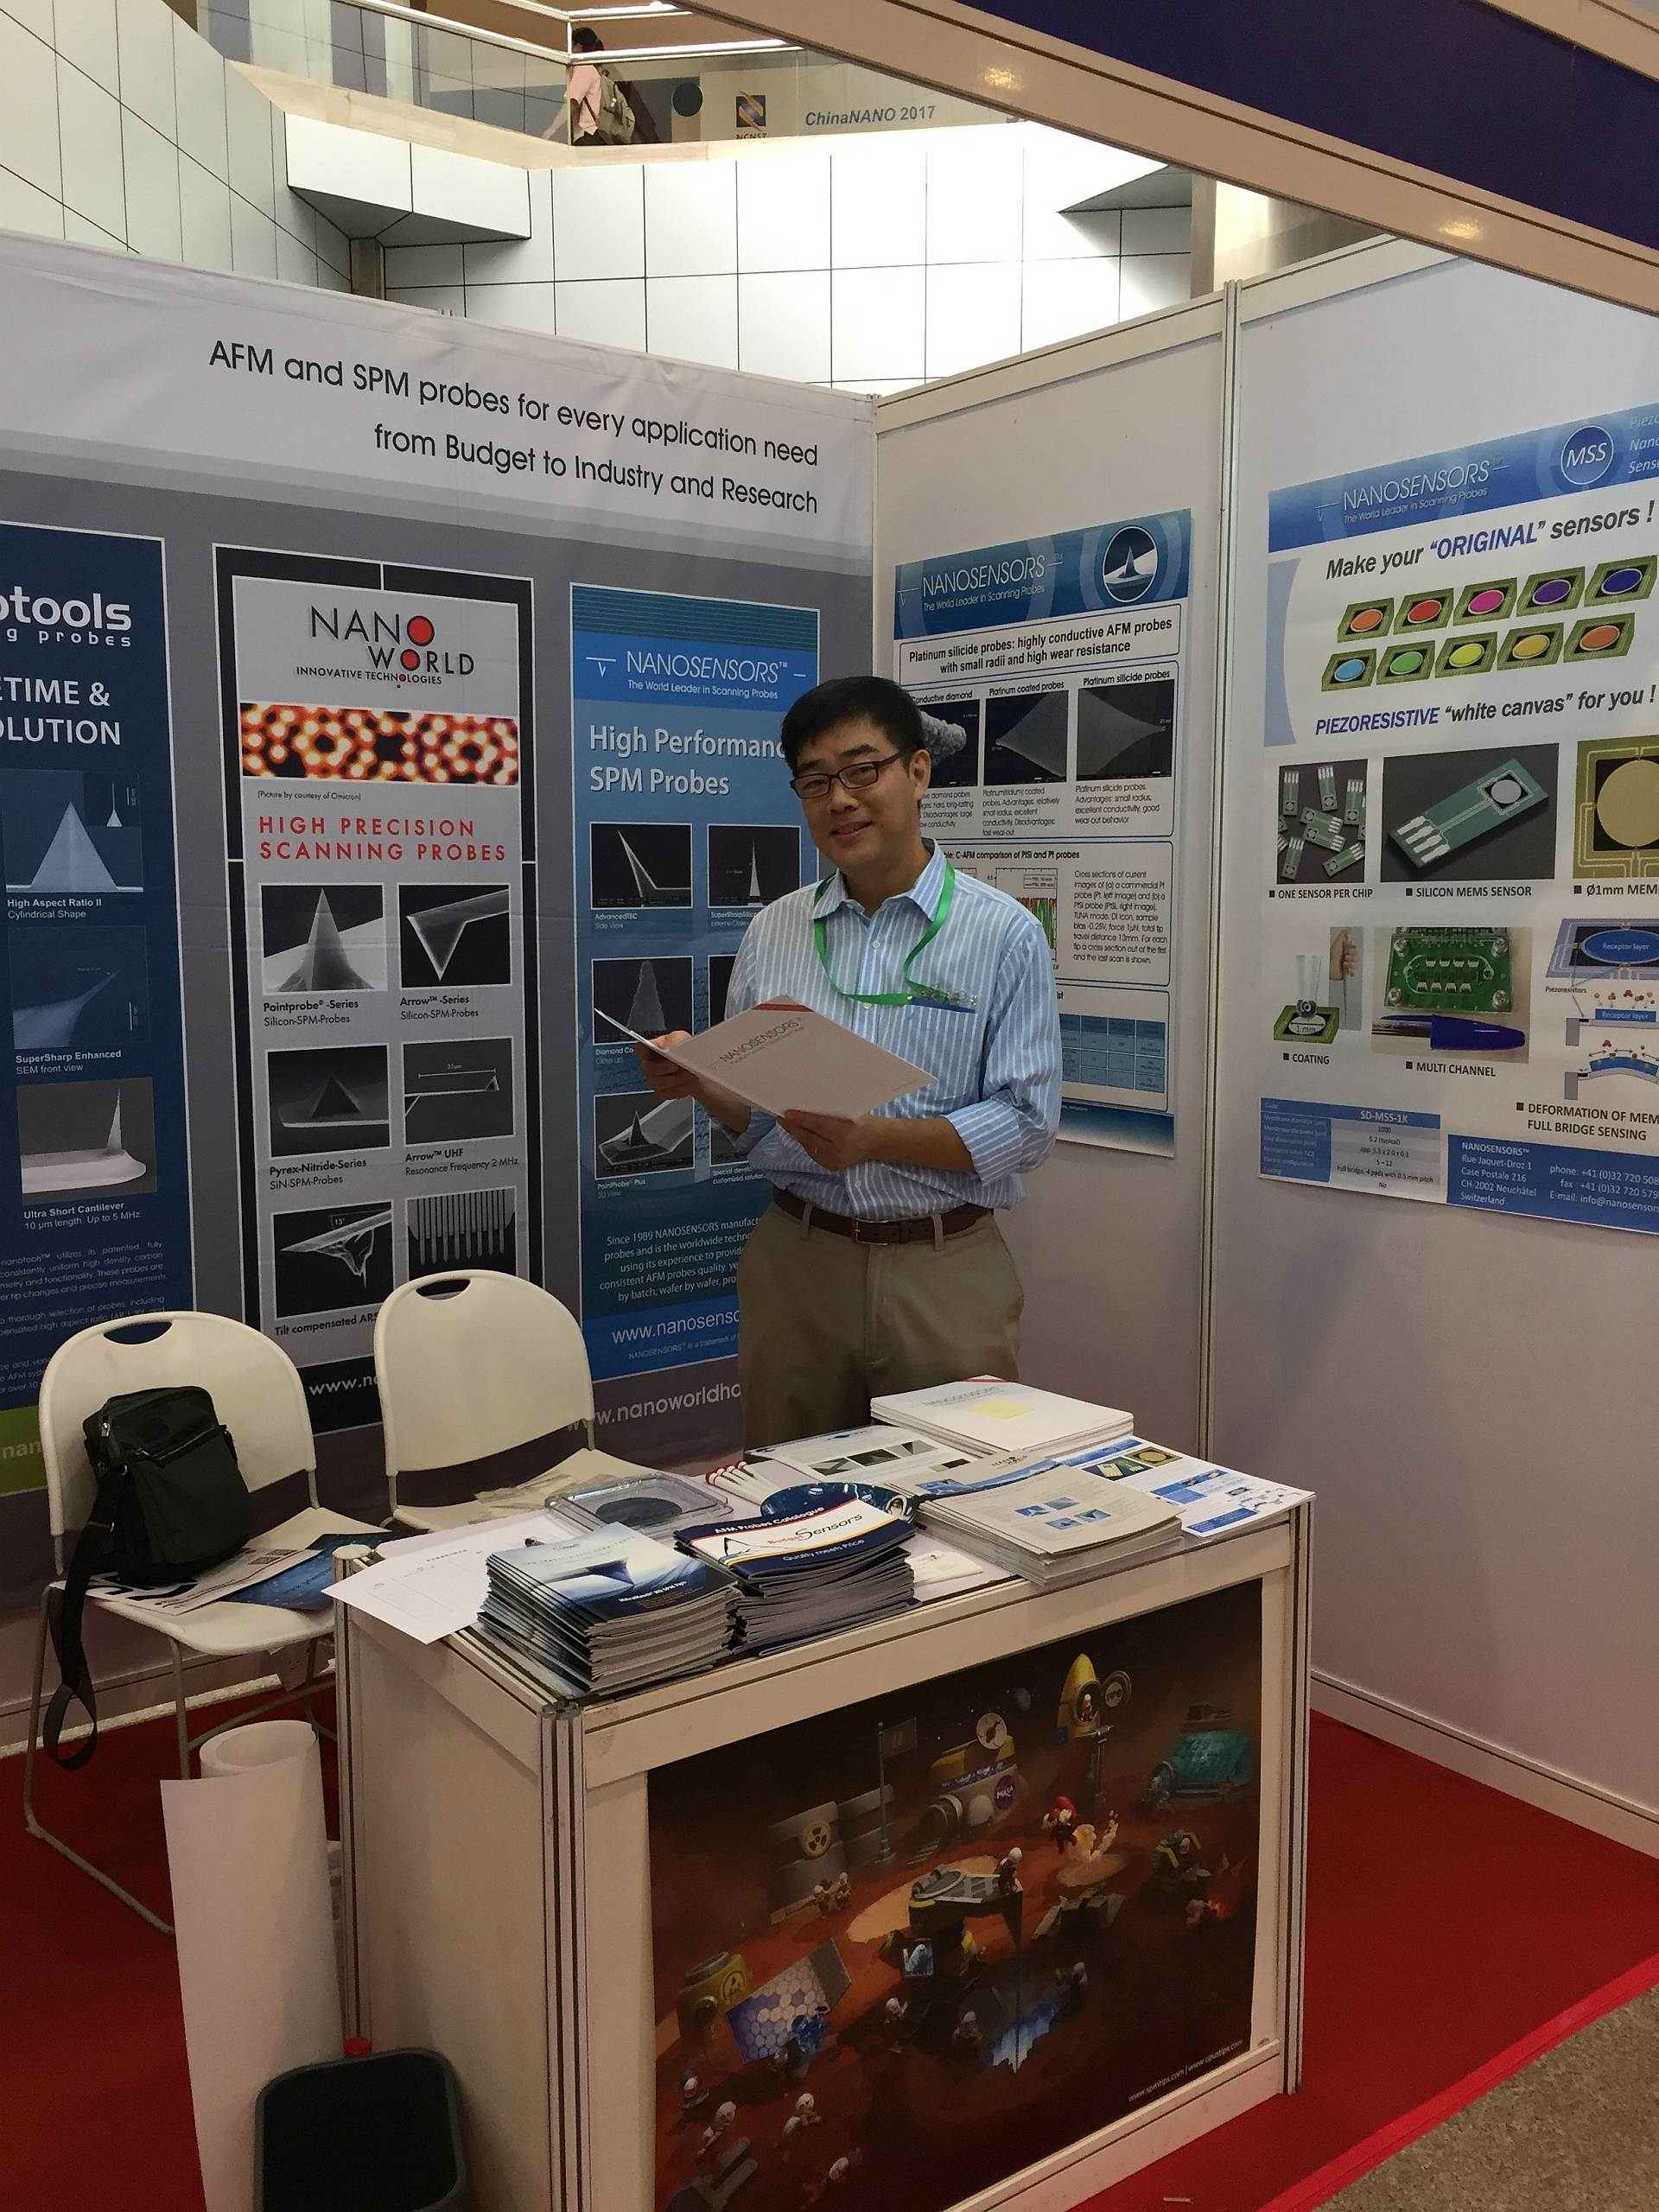 Meet NANOSENSORS at booth 503 of China Nano 2017 Beijing 29